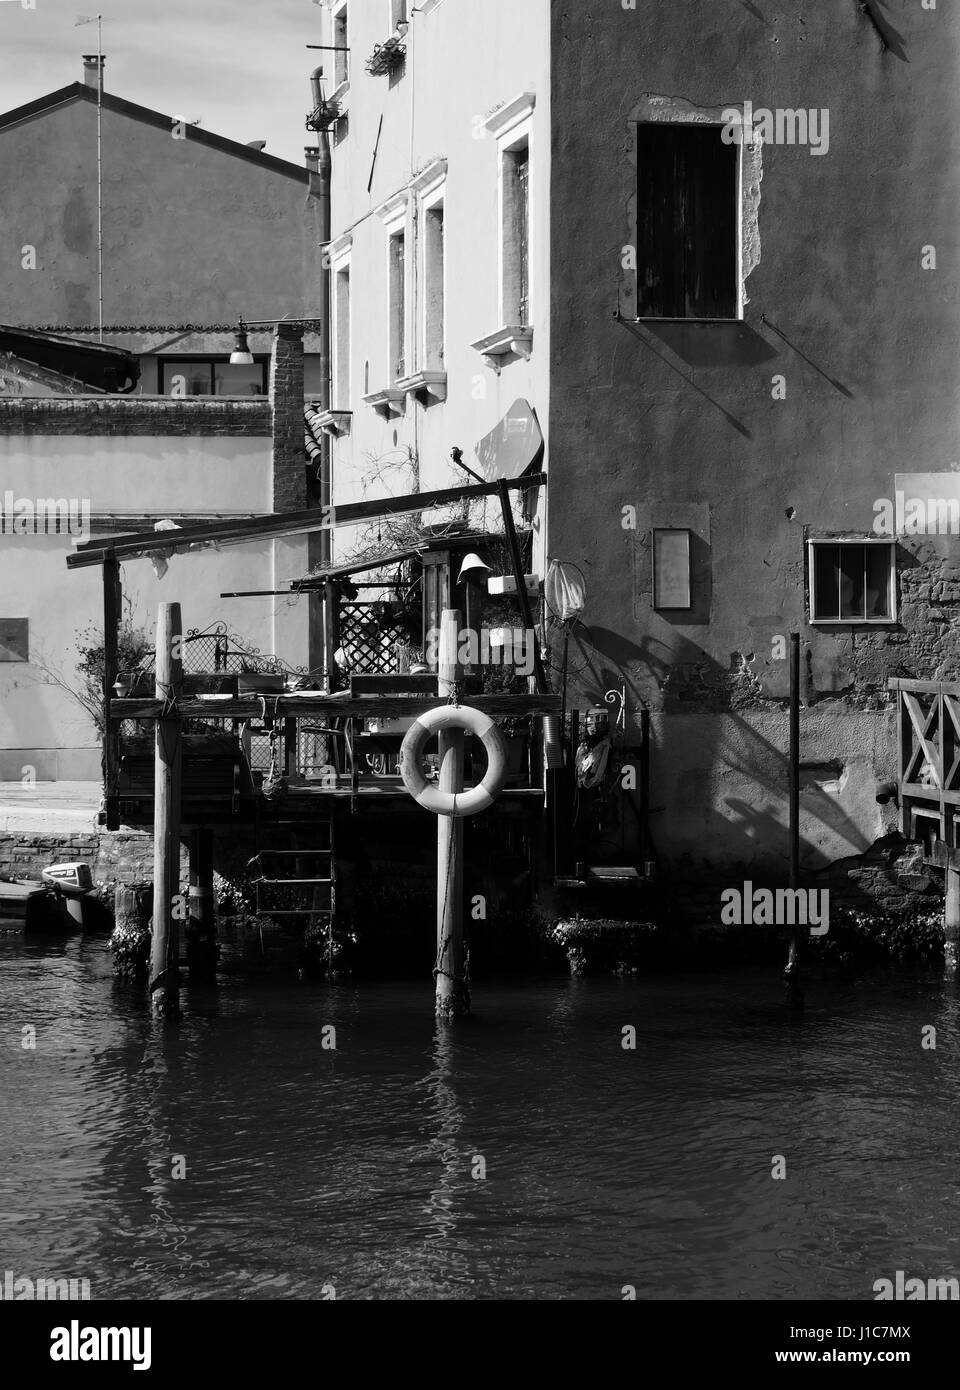 life preserver and boat details at the side of a canal in guidecca in venice - Stock Image